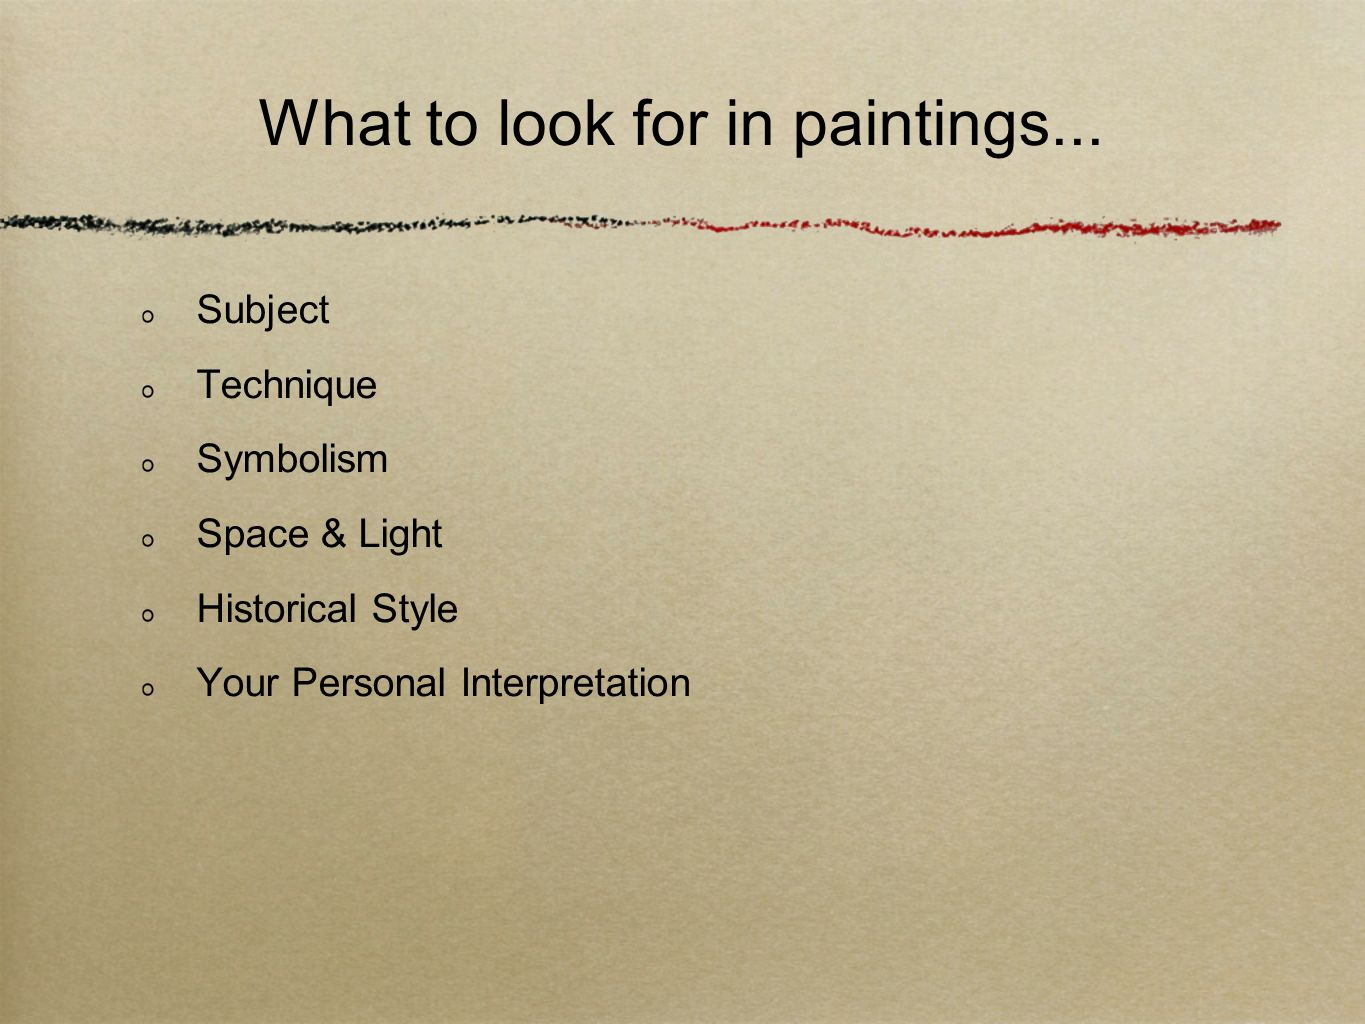 What to look for in paintings...